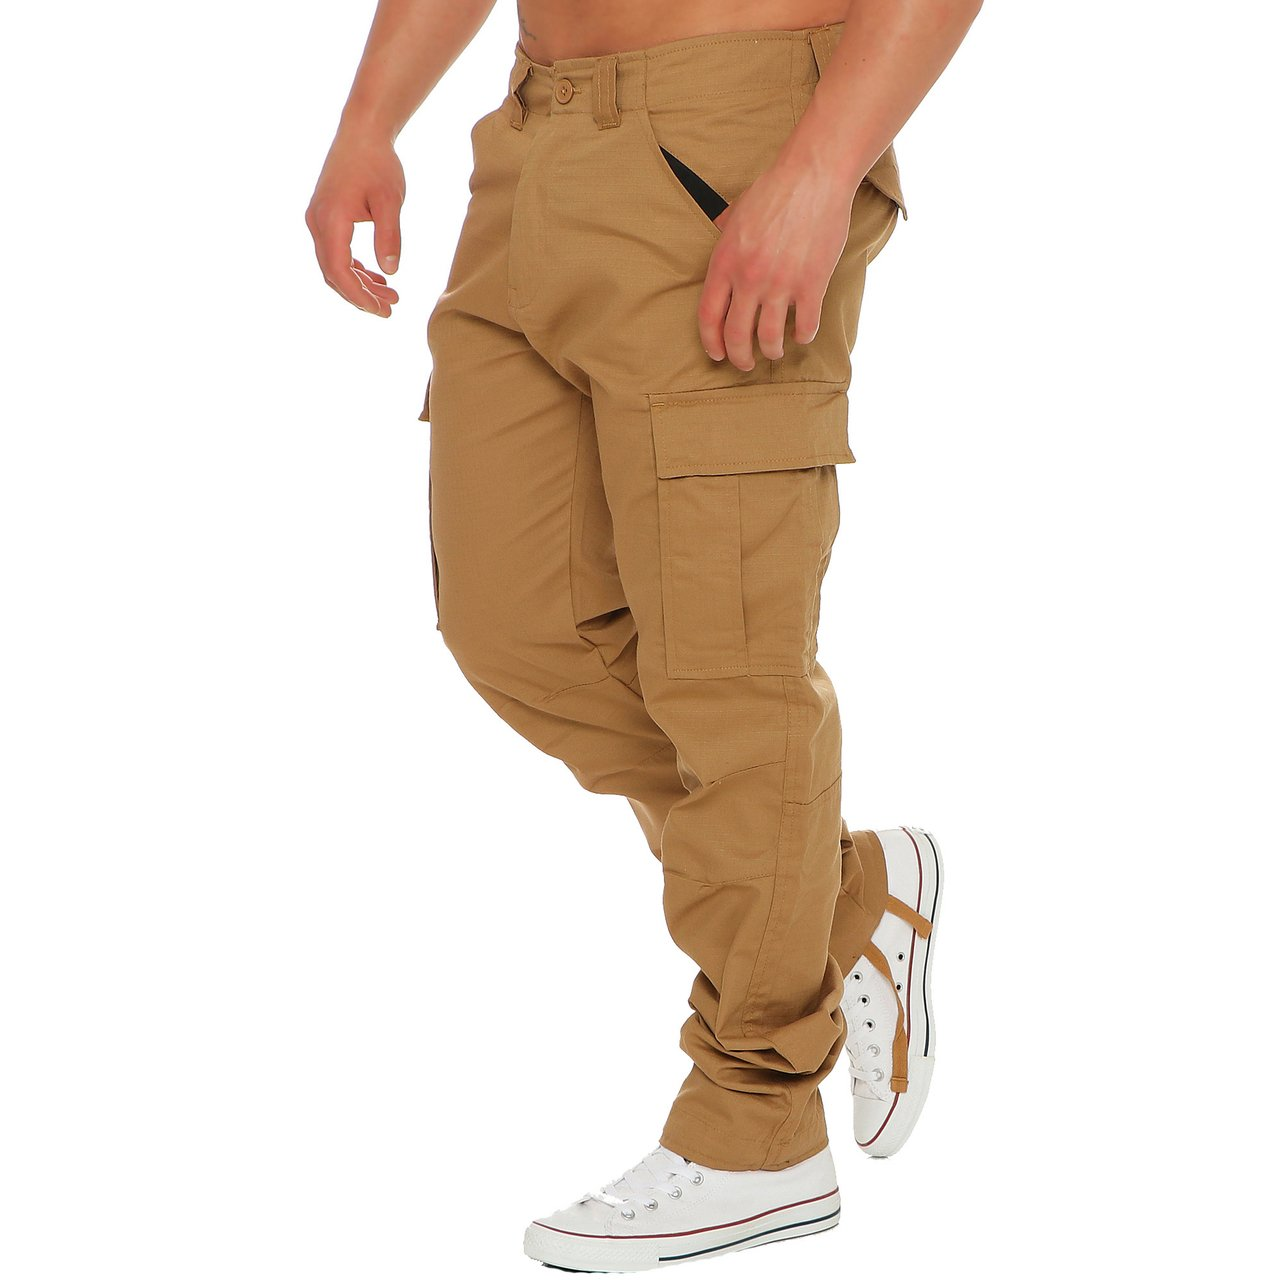 Finchman Herren Cargo F1001 Hose Lang Trousers Pant Freizeithose Tapered Fit